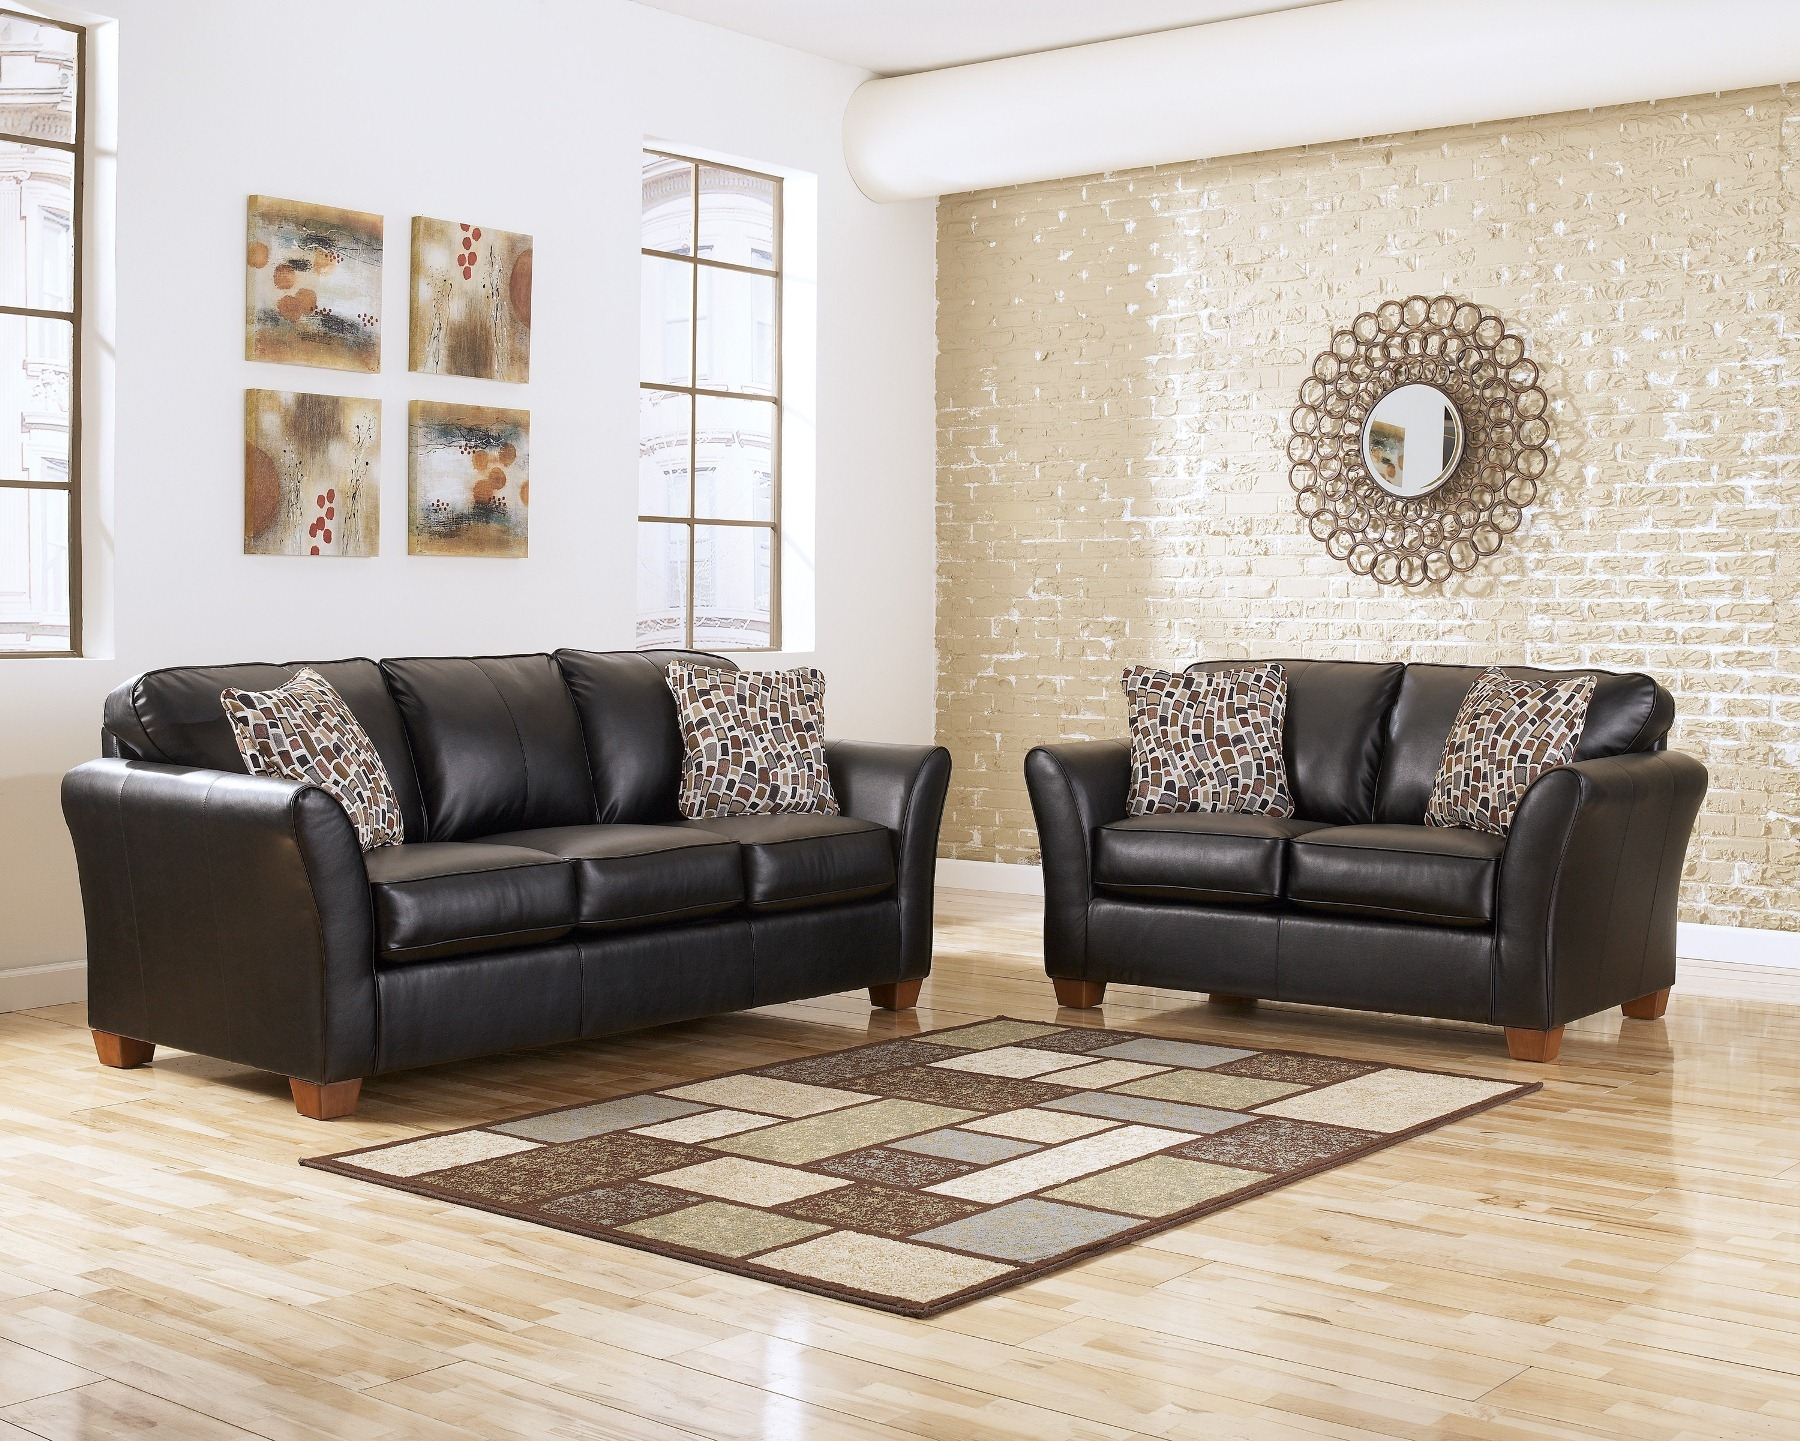 Sofas Center Sofa Sleeper Atg Lots Furniture Sofas For Sale And With Regard To Big Lots Sofa Sleeper (#10 of 12)